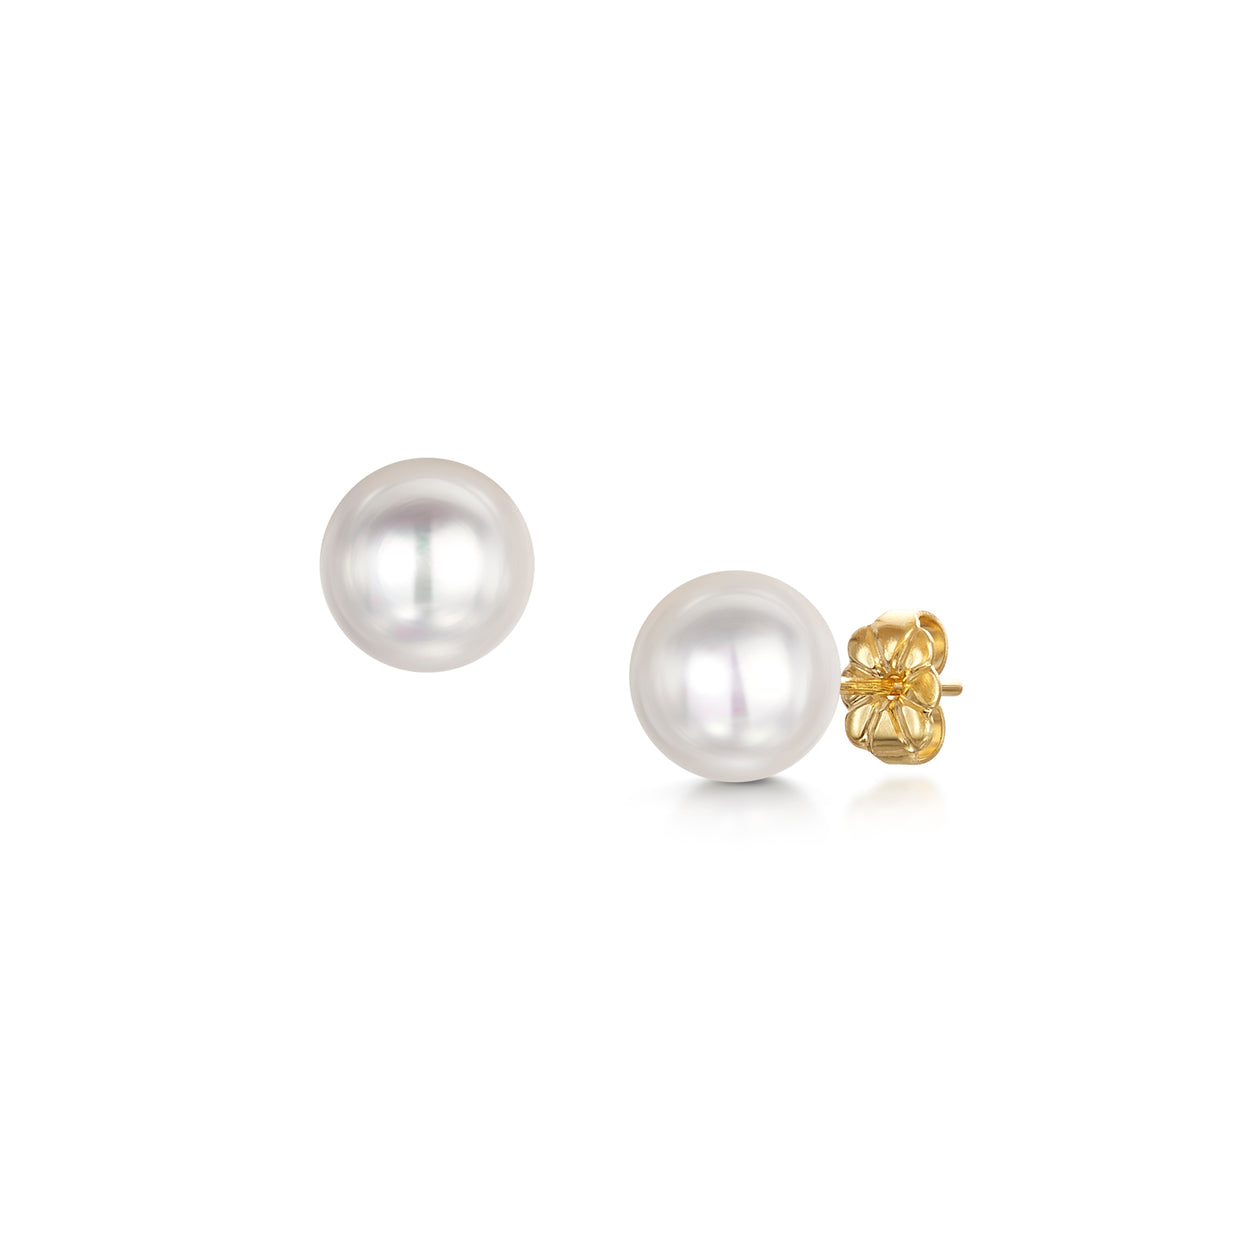 Single Cultured Pearl Stud Earrings - Hamilton & Inches